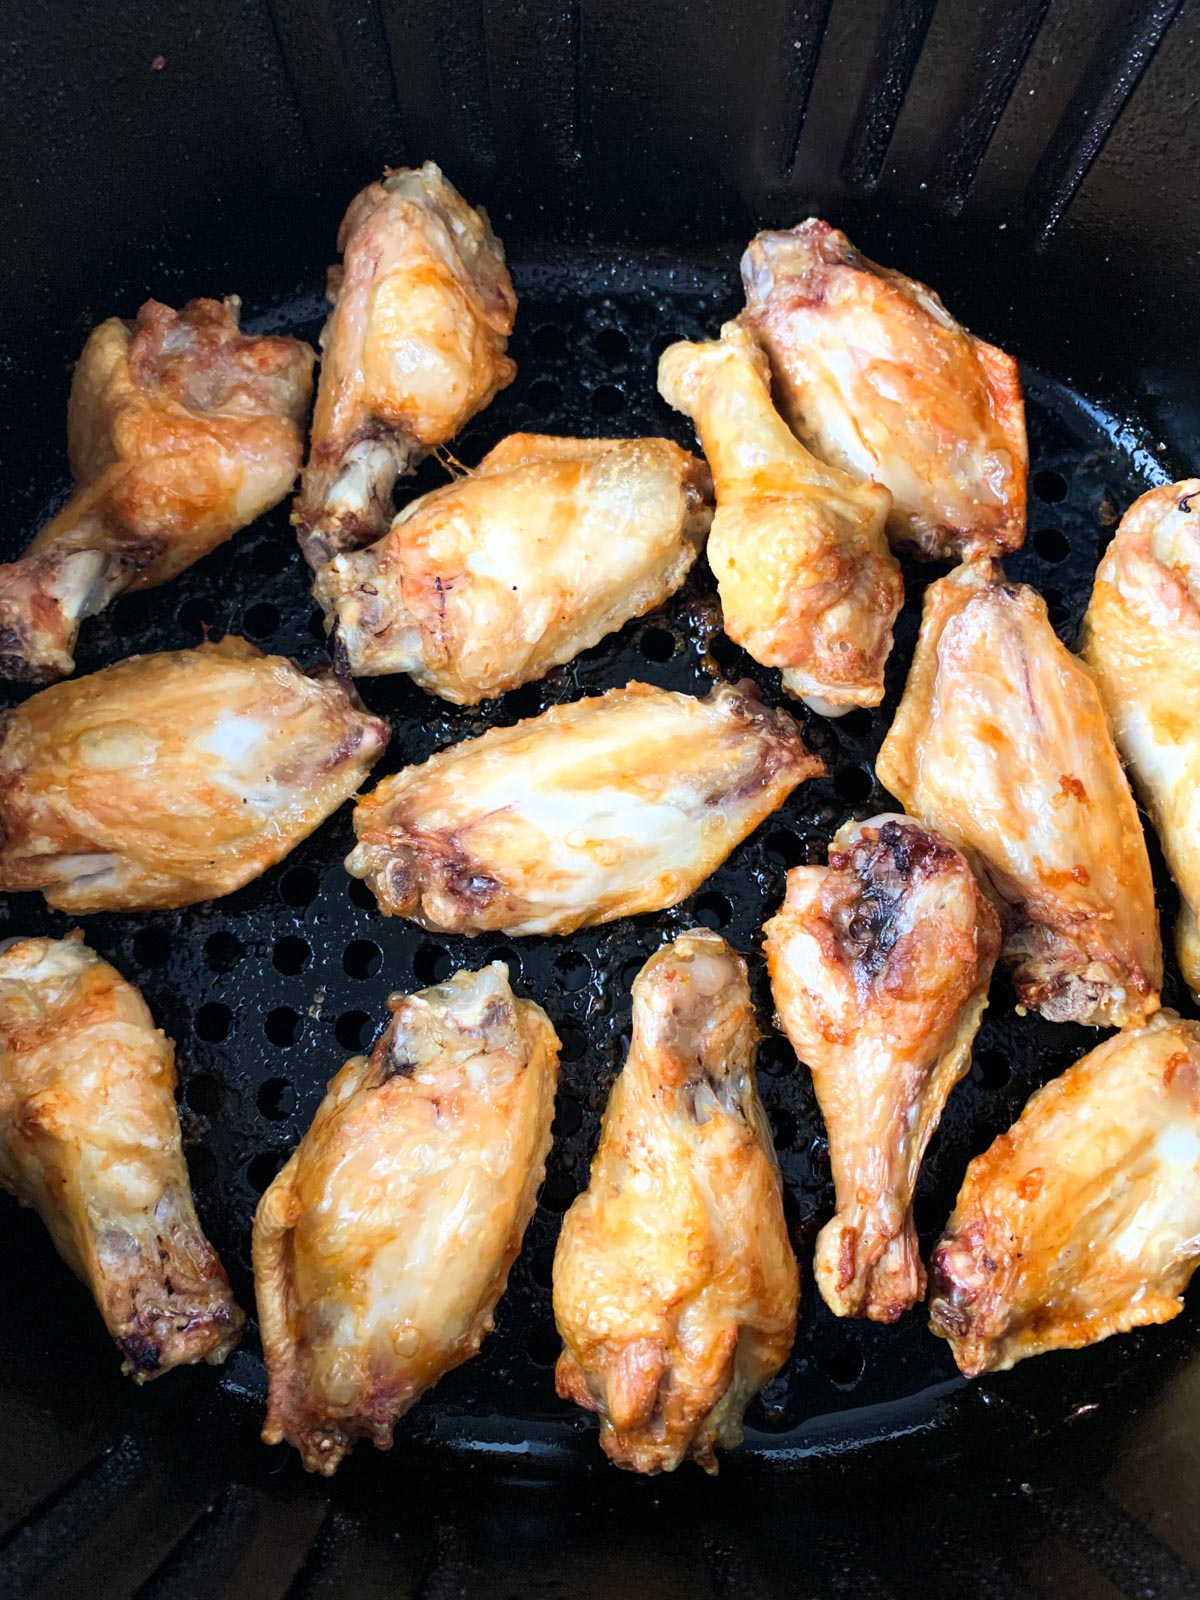 Chicken wings fried in an air fryer.